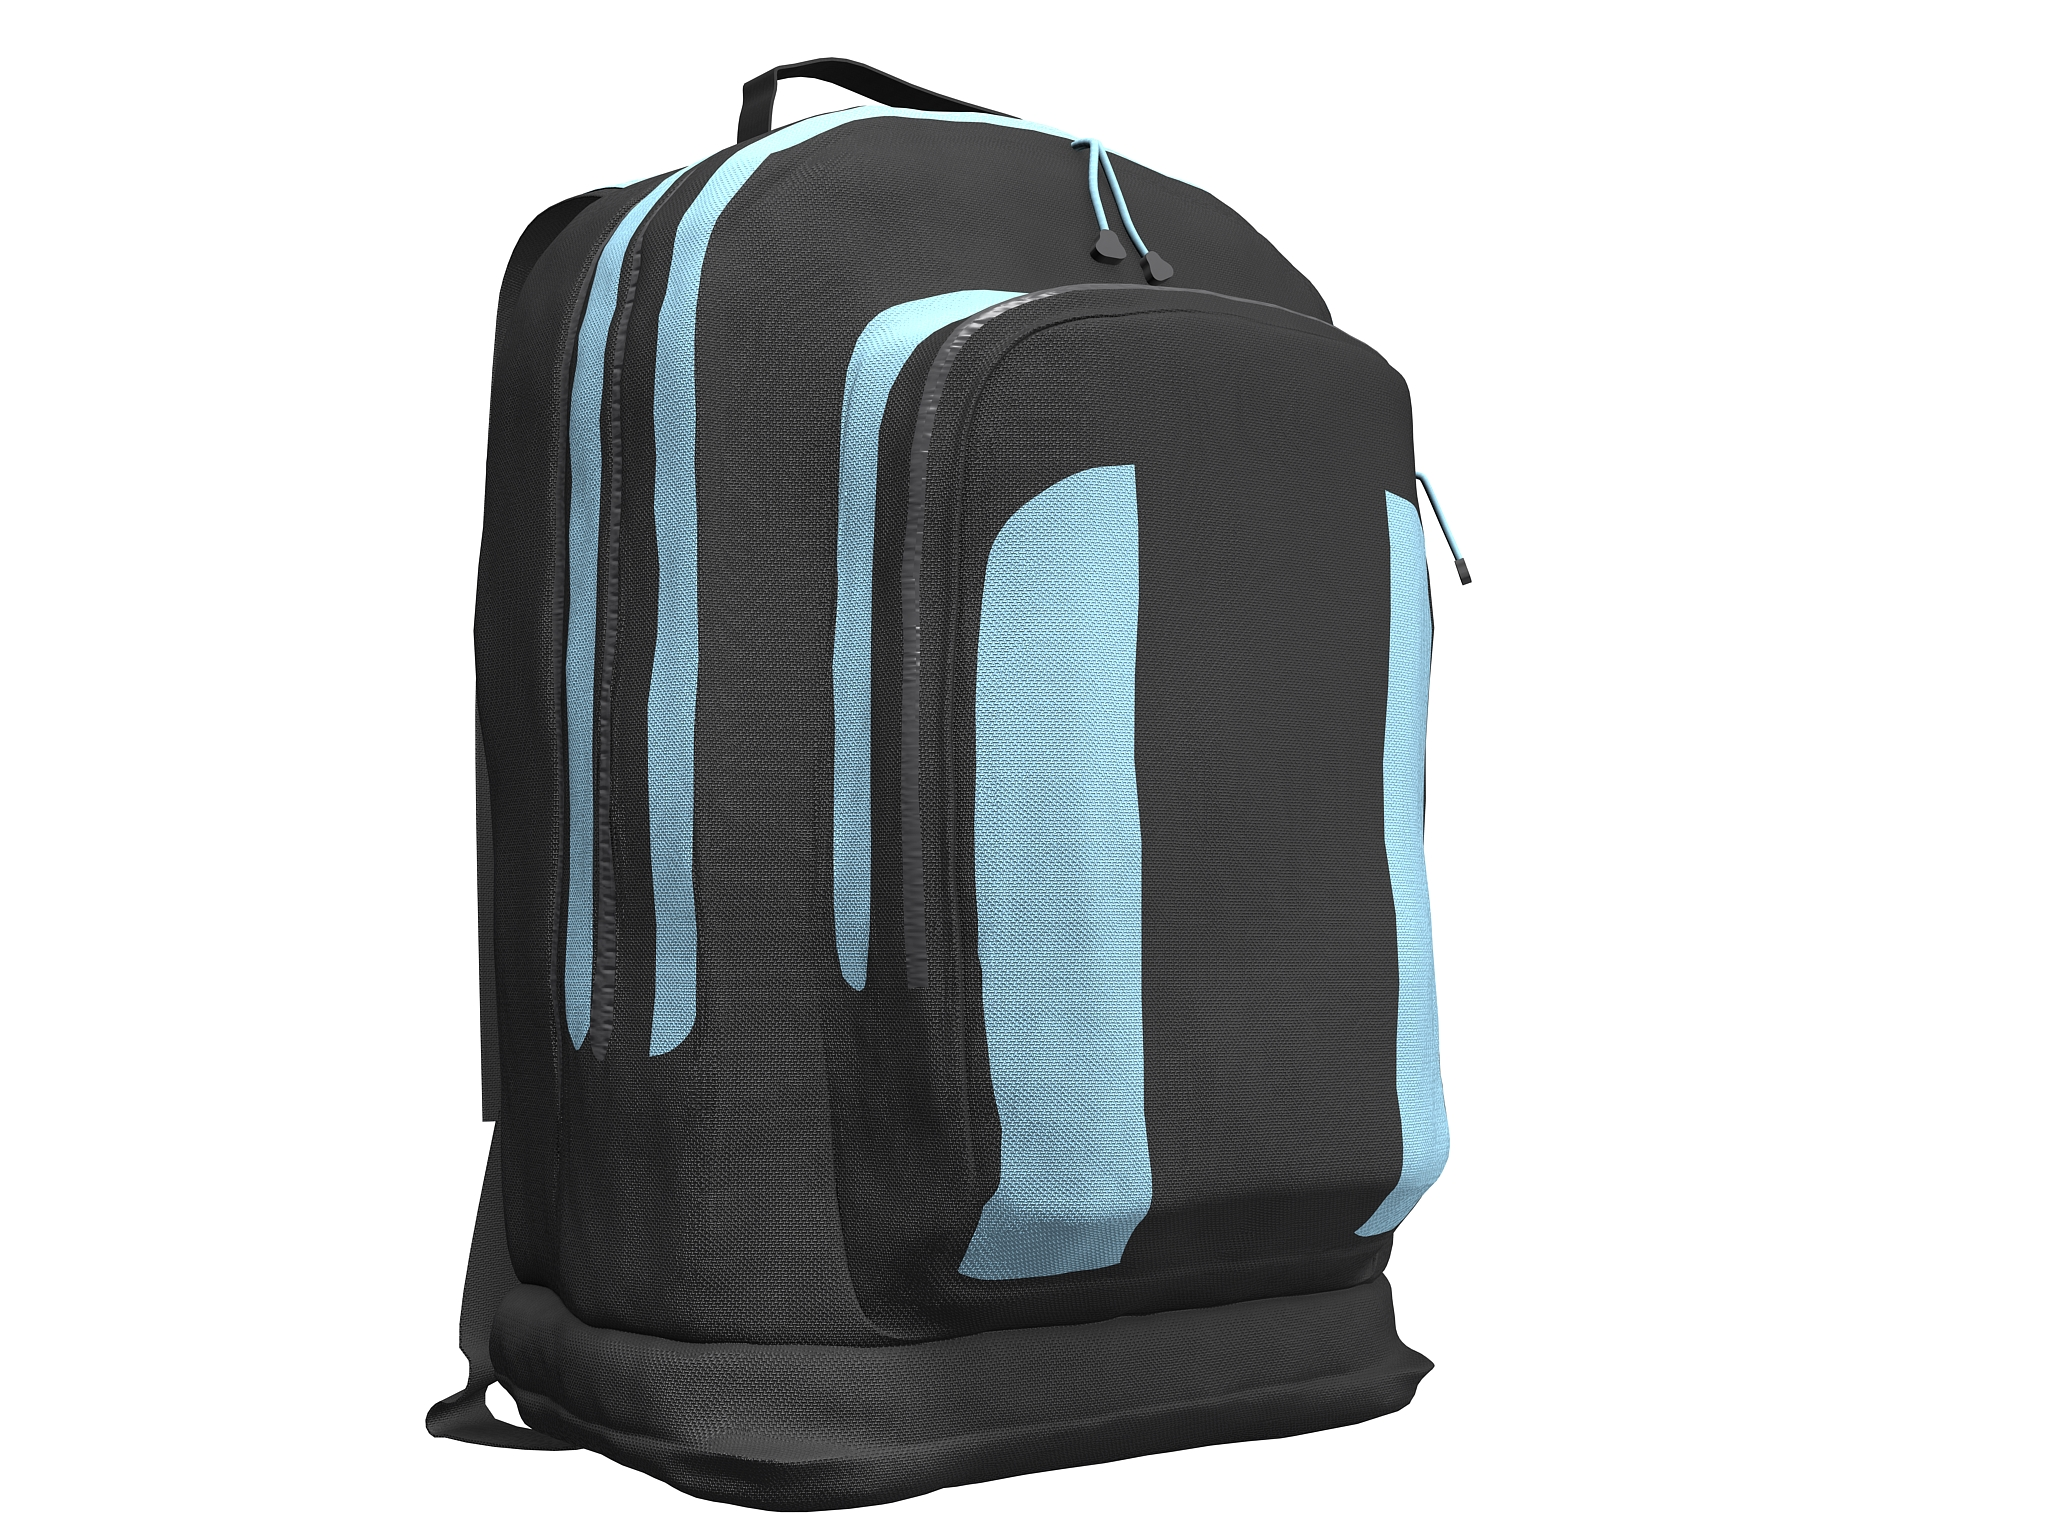 simple backpack 3d model max fbx texture obj 269421